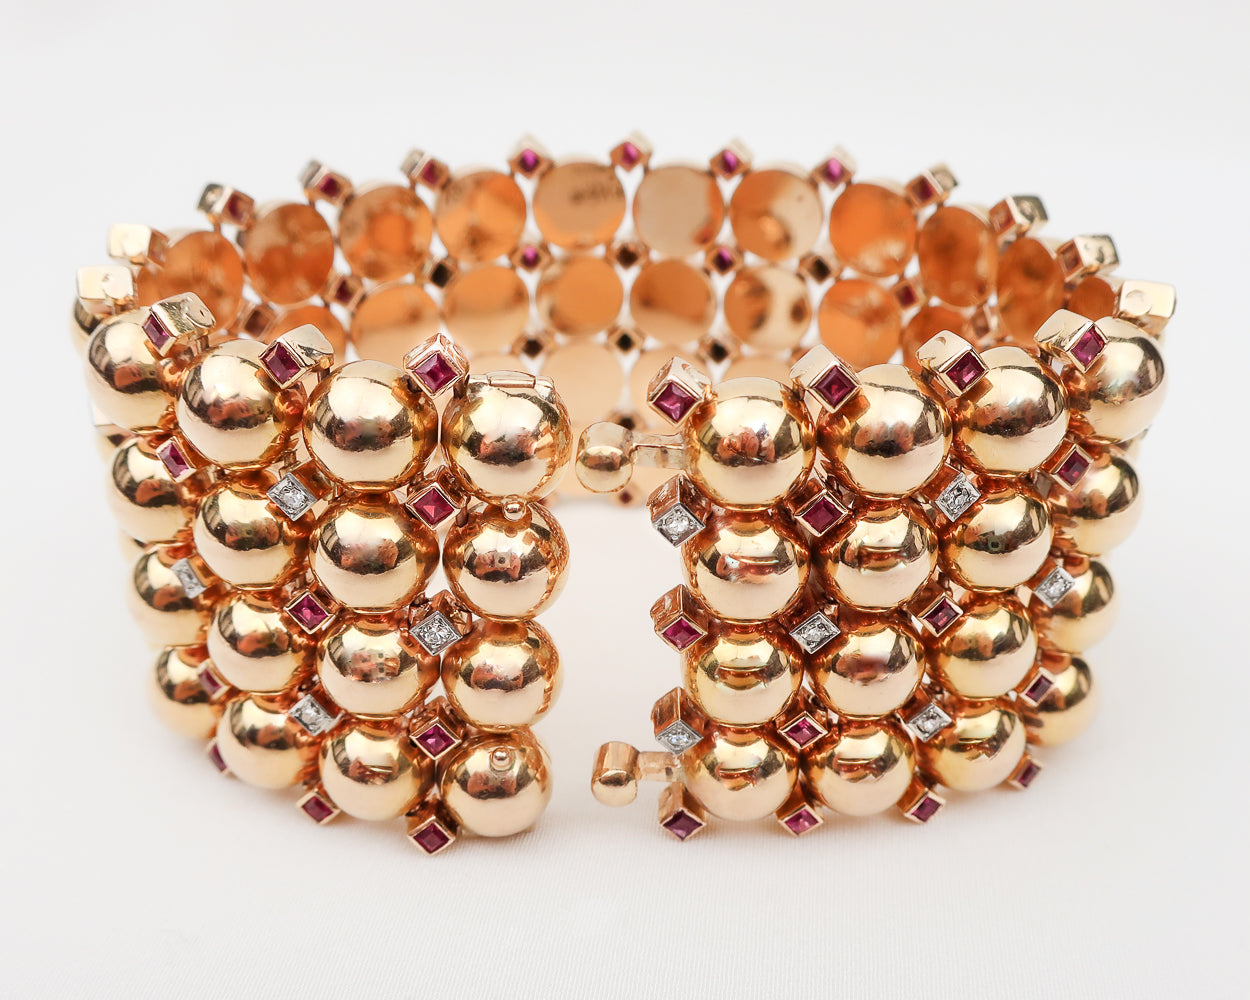 Retro-Era Rose Gold Bracelet with Gemstones